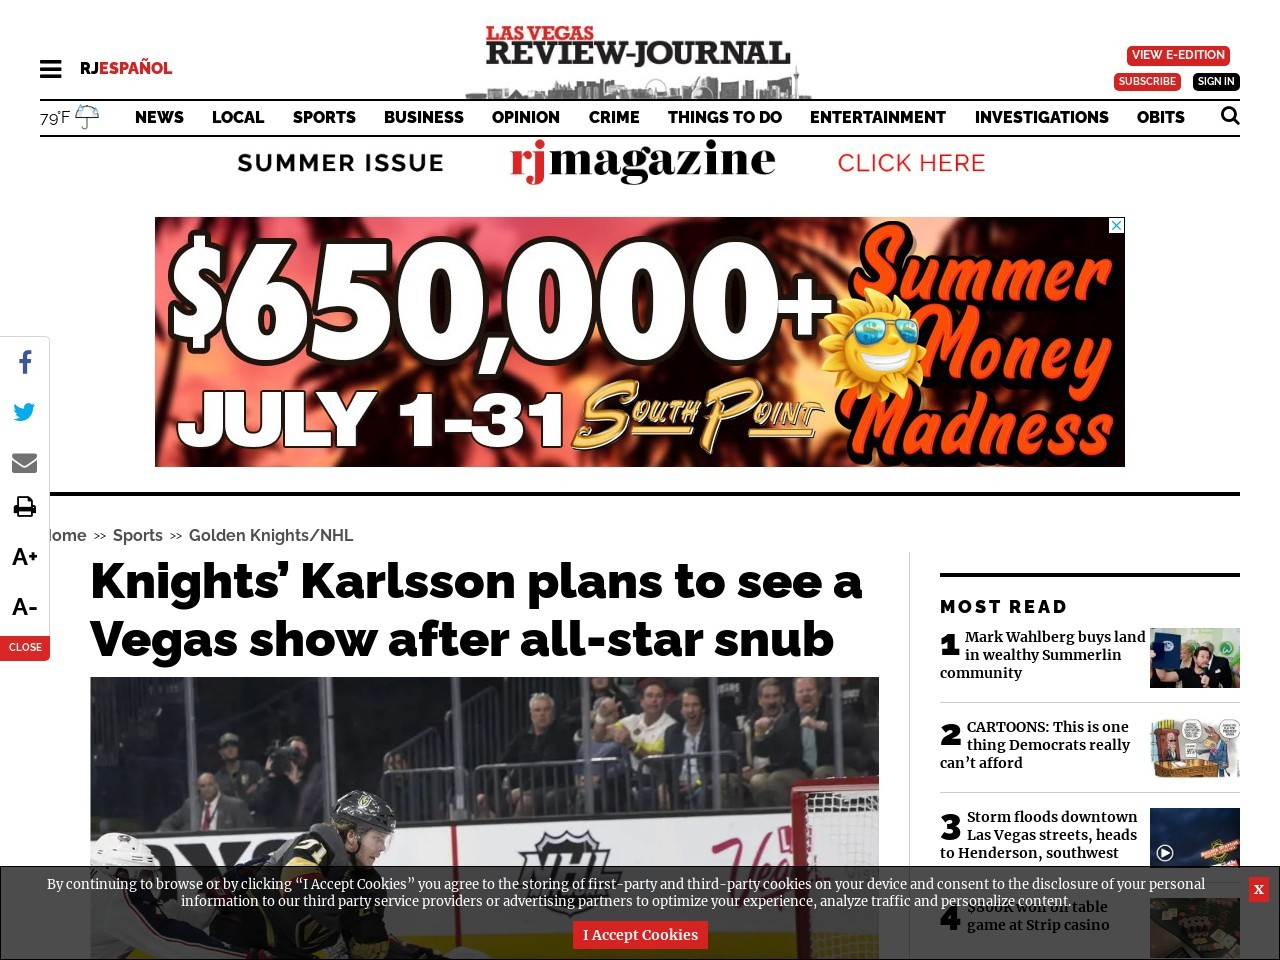 Knights' Karlsson plans to see a Vegas show after all-star snub